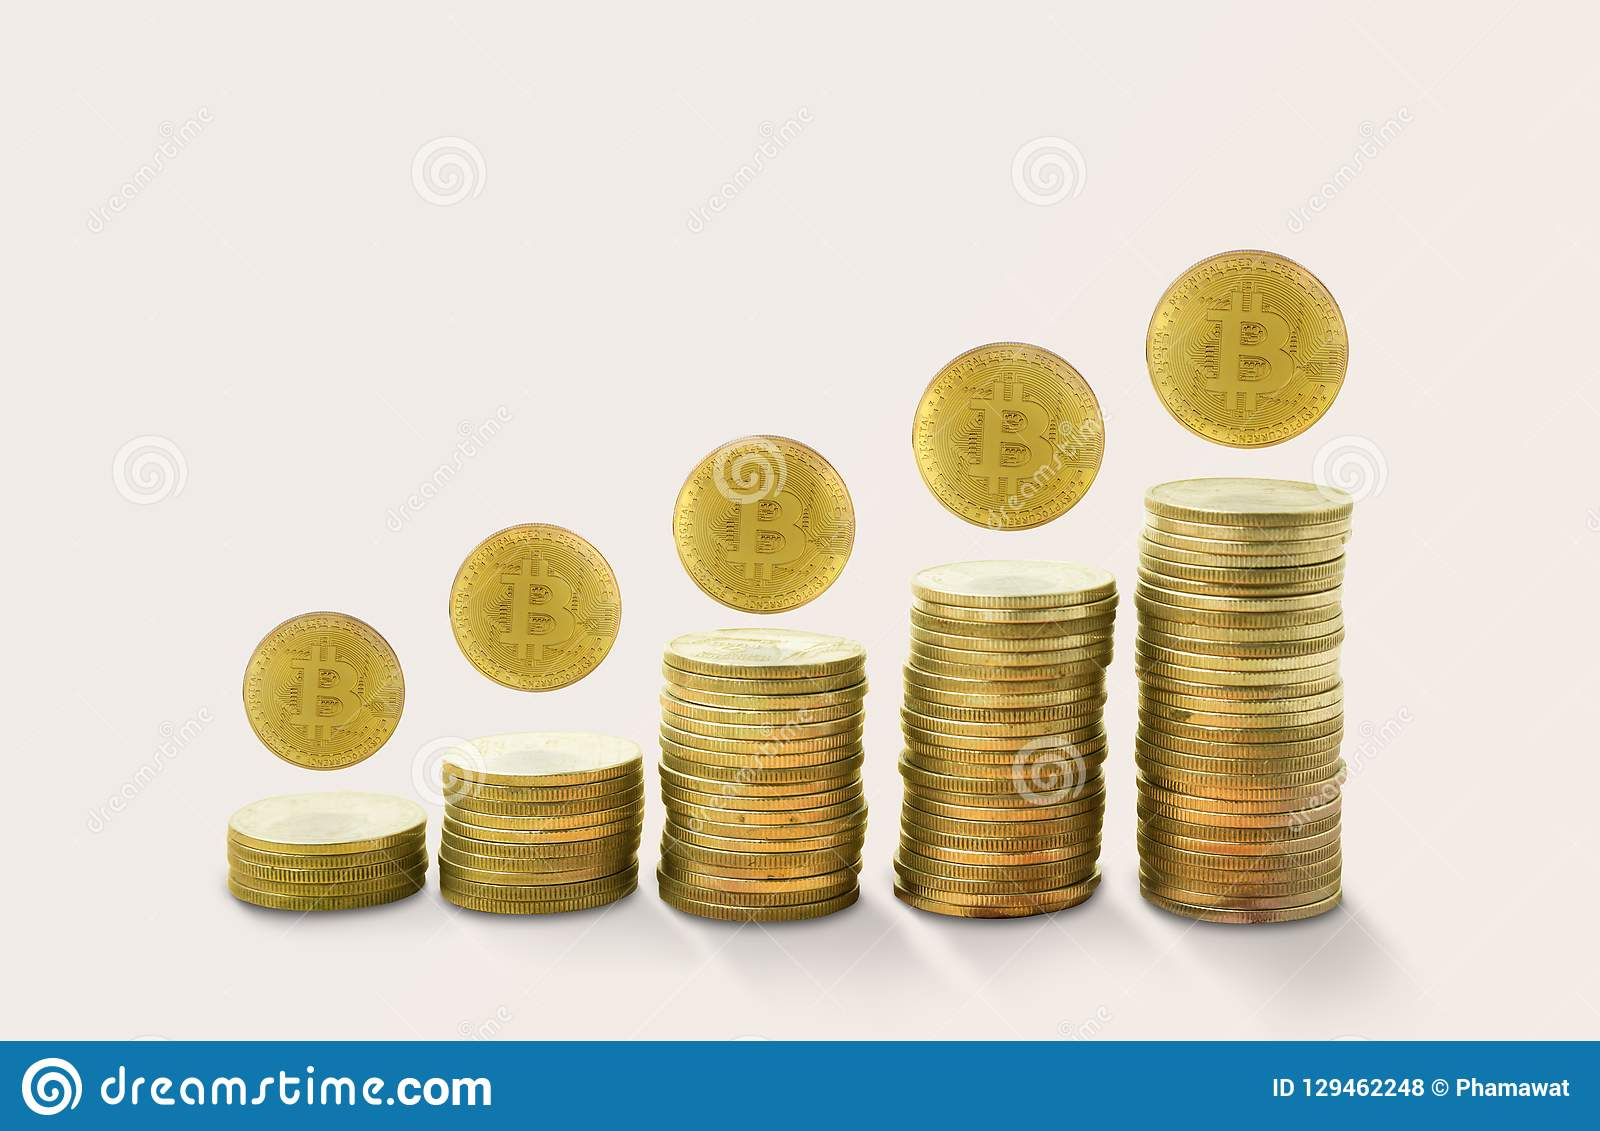 Stacks of gold coins income with bitcoin. concept growing golden